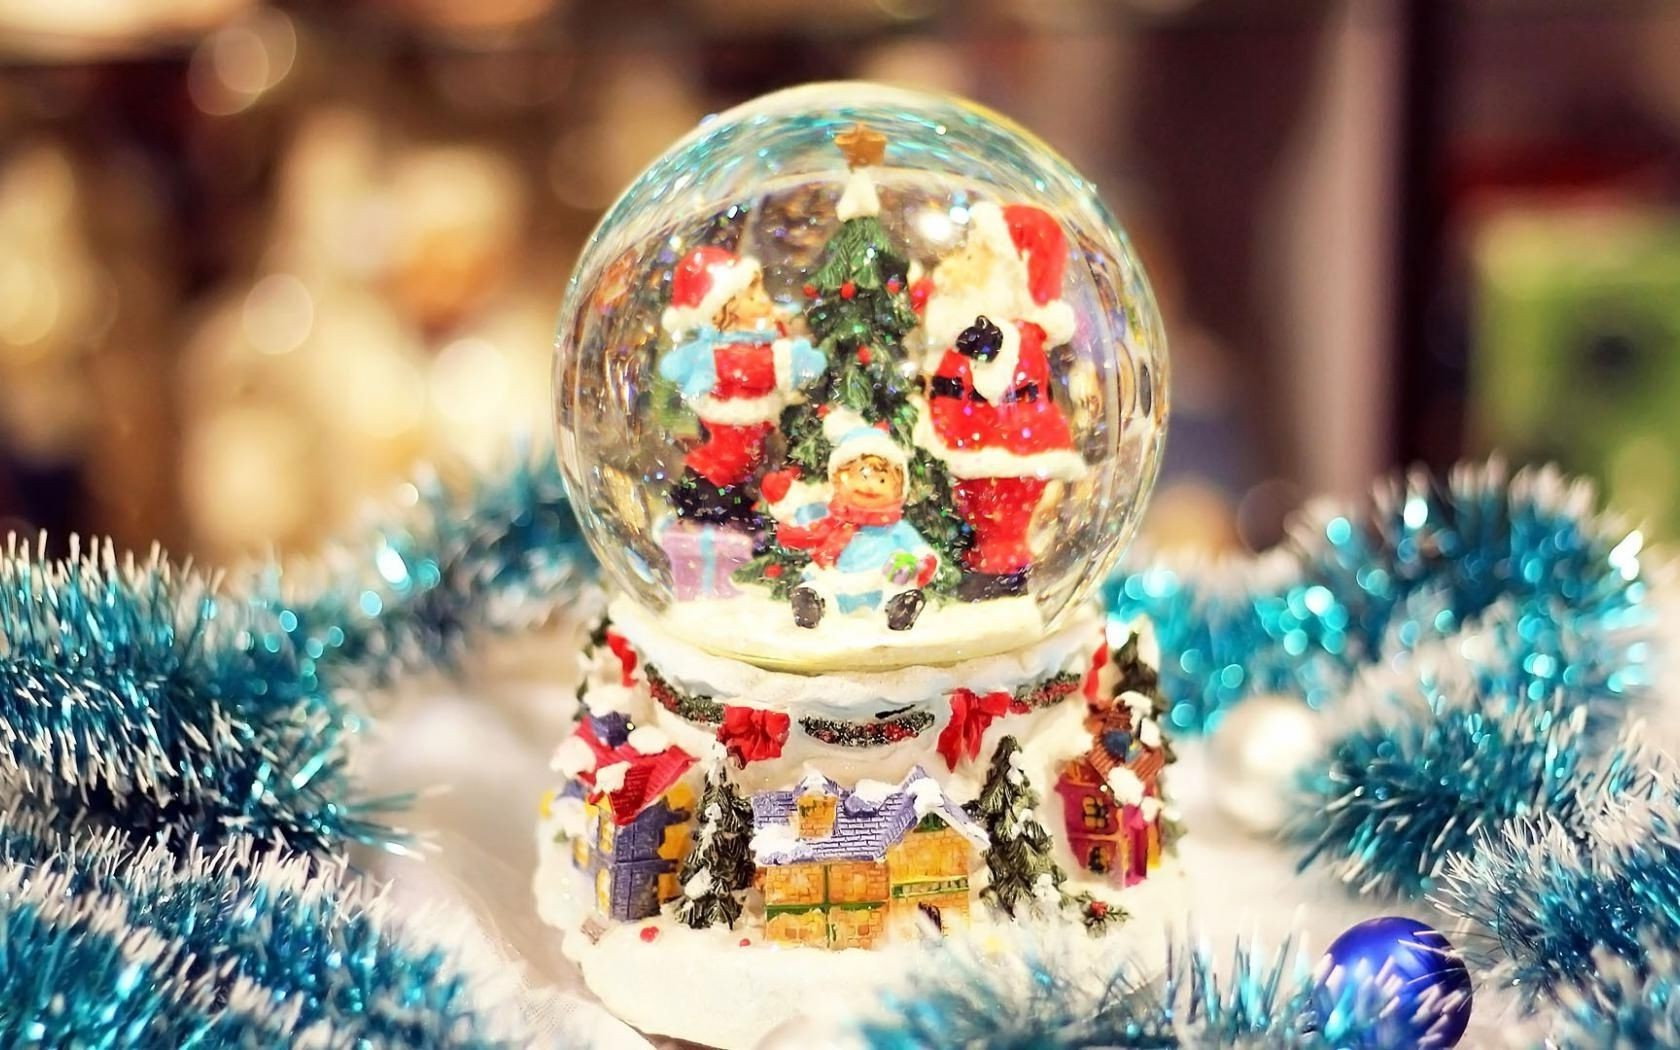 snow globes wallpaper  A snow globe Santa snow globe. Android wallpapers for free.